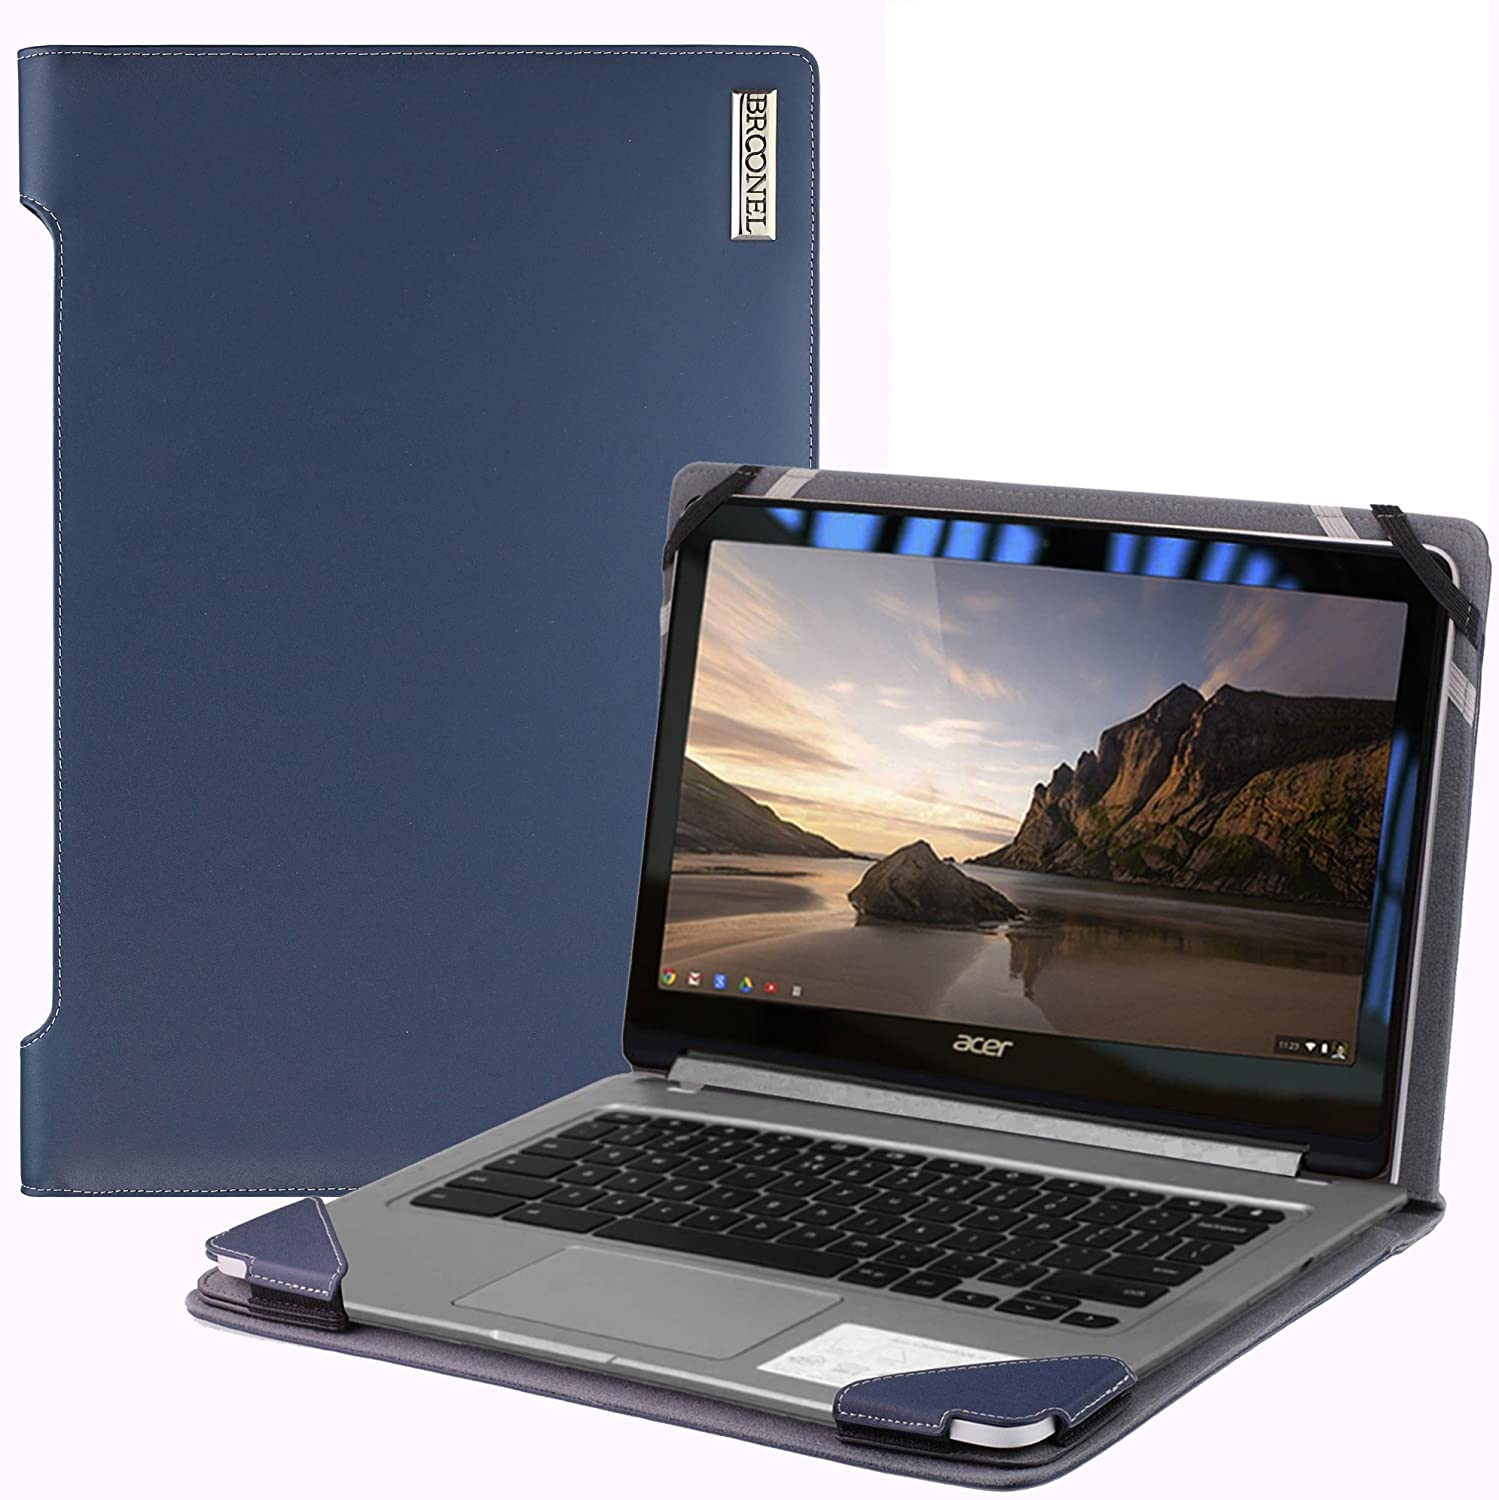 Broonel London - Profile Series - Blue Vegan Leather Laptop Case Cover Sleeve Compatible with The Acer Chromebook R13